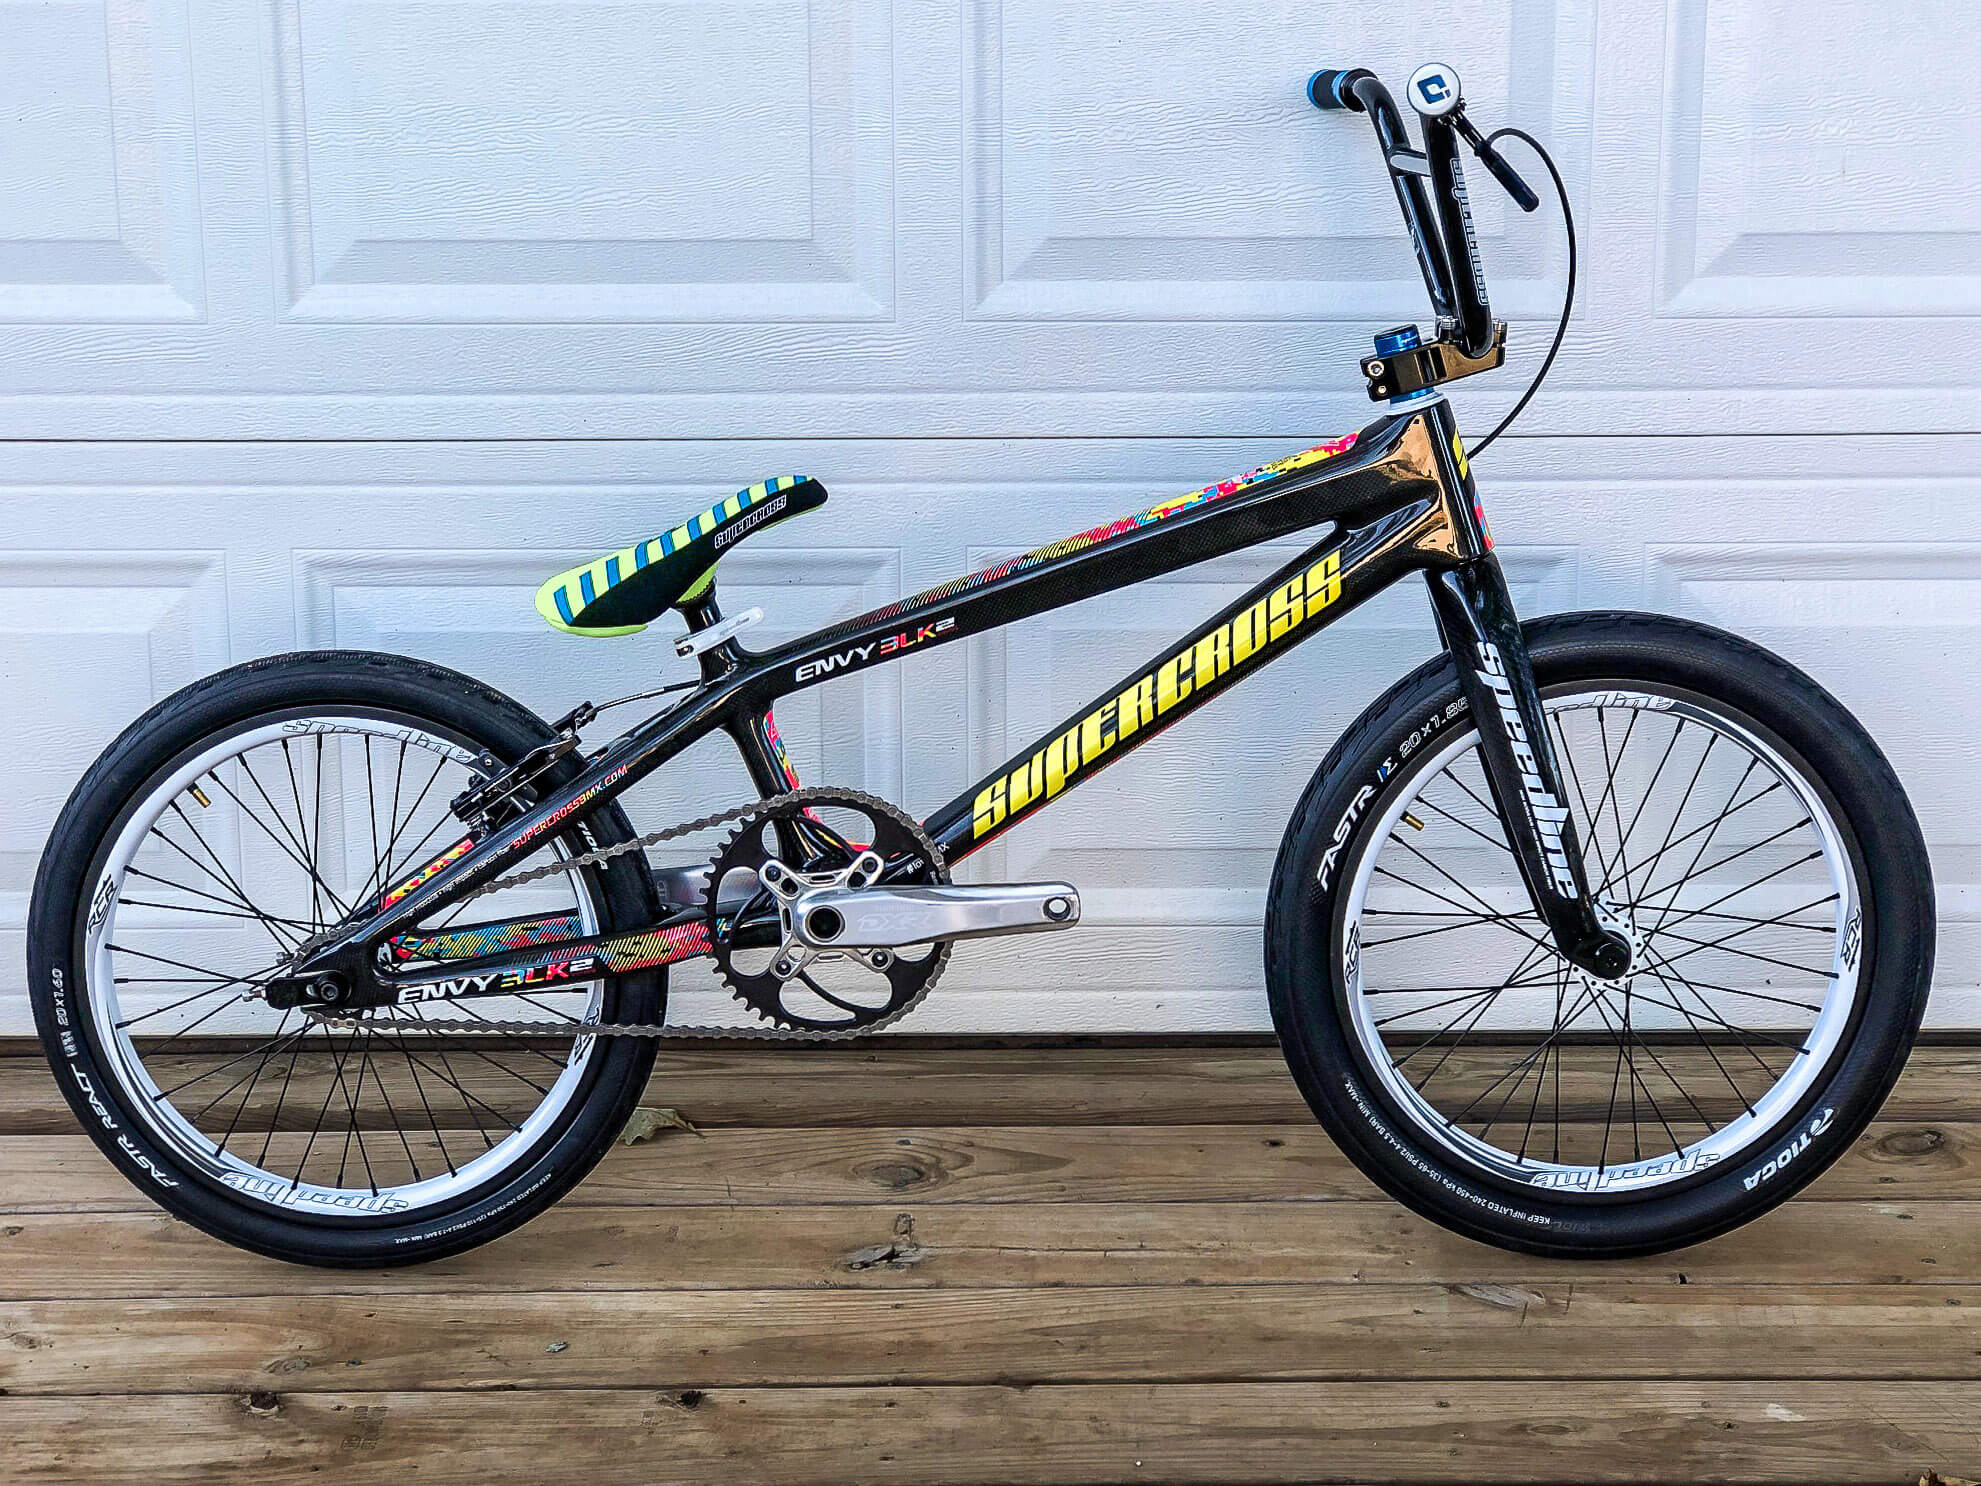 KJ Supercross Envy BLK 2 2019 Black - KJ Romero